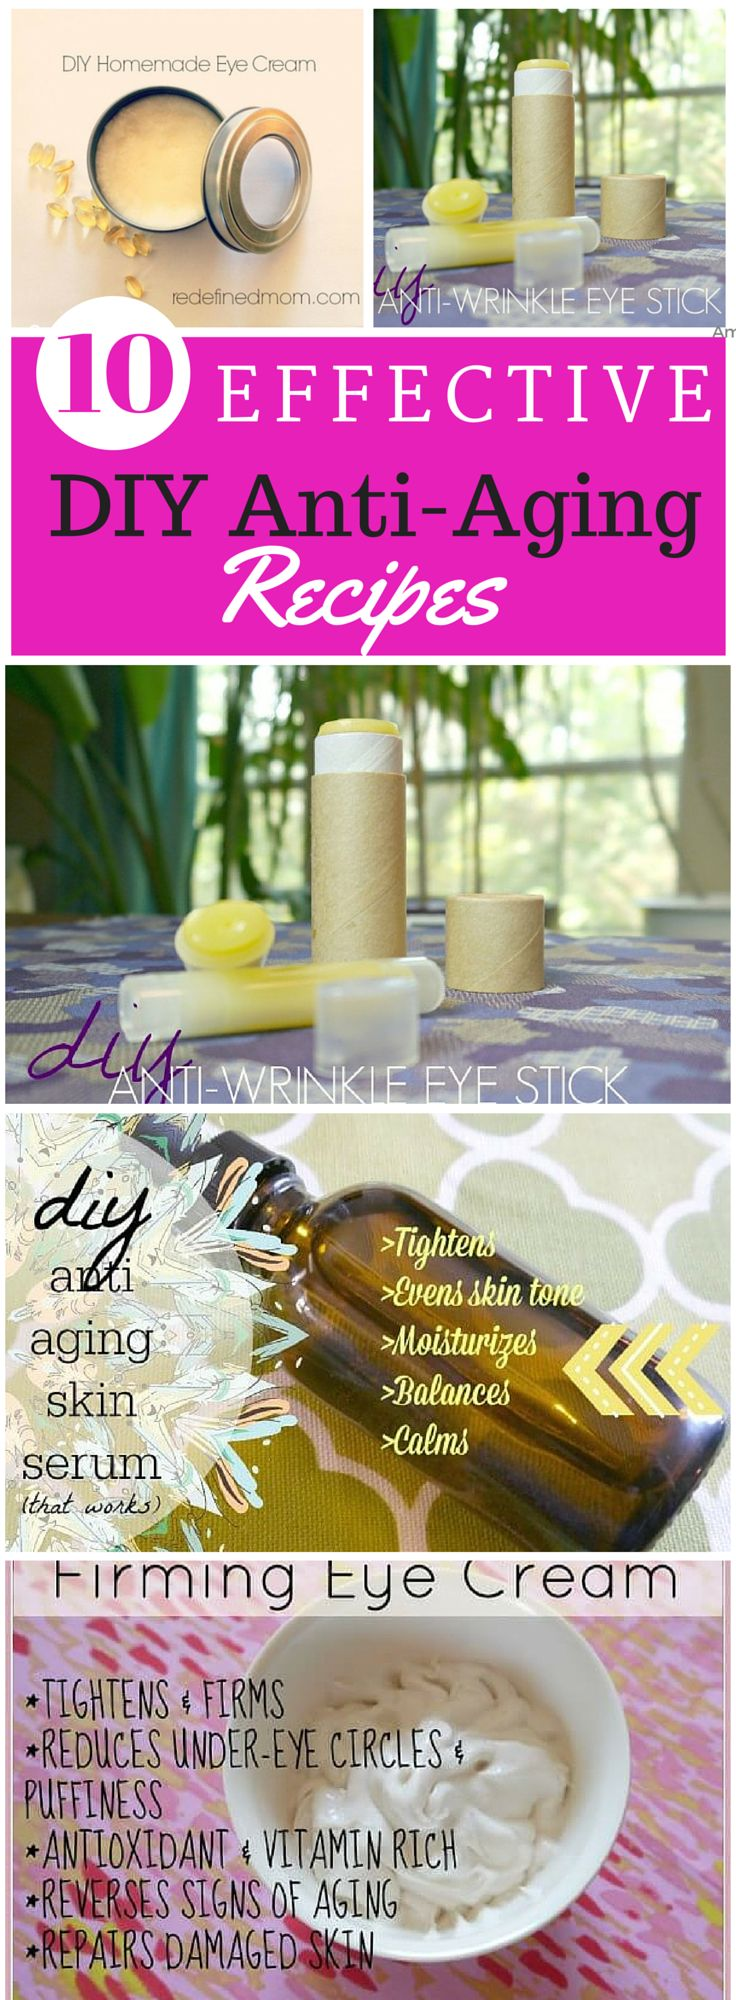 10 Effective DIY Anti Aging Skin Care Recipes: Save yourself some serious money and make your own DIY anti aging creams, DIY anti aging serums, and DIY anti aging eye creams!